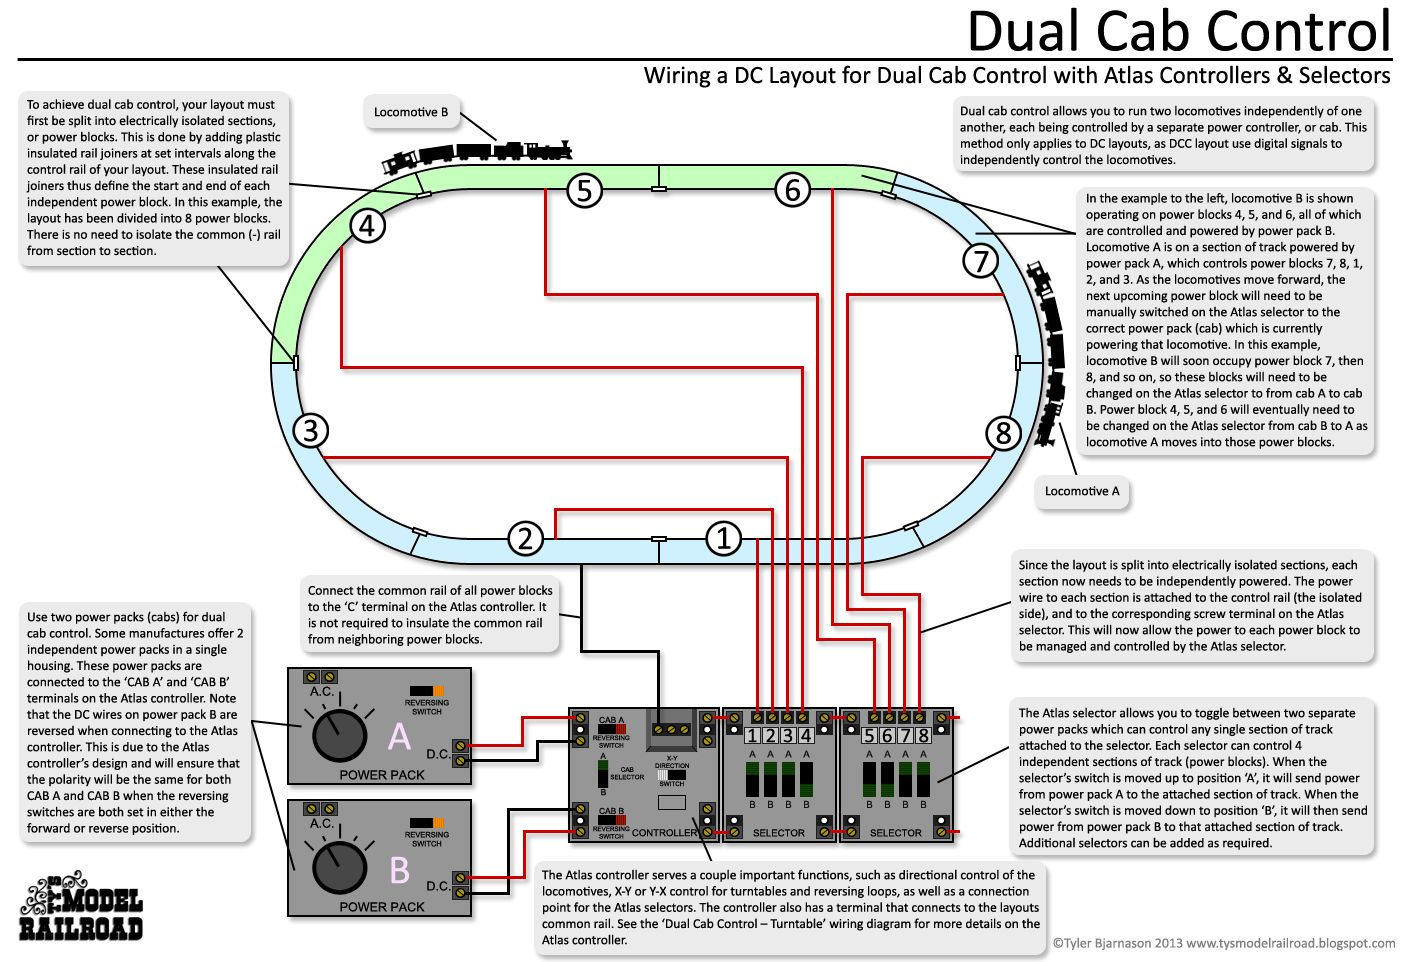 atlas model railroad wiring how to wire a layout for dual cab control using an atlas controller  [ 1409 x 962 Pixel ]